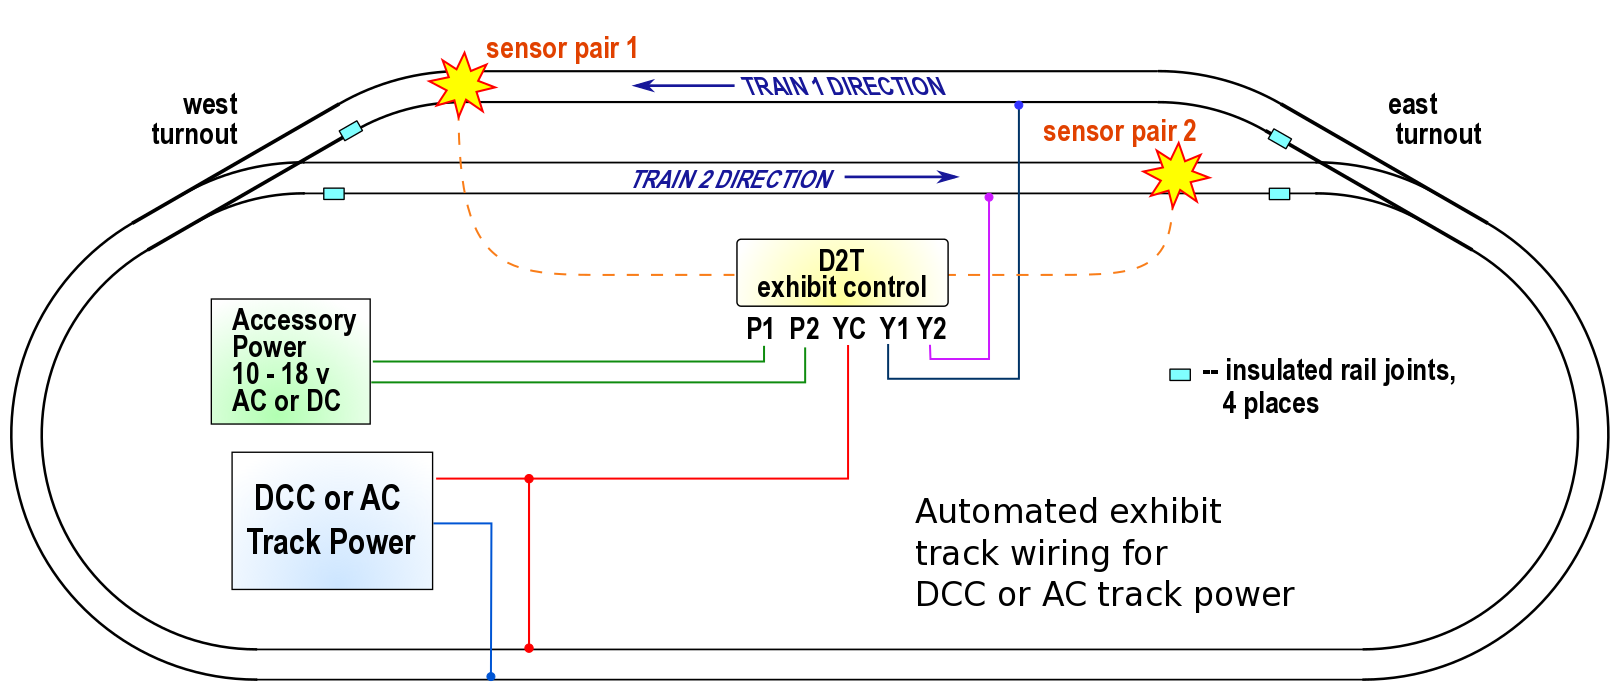 hight resolution of loop wiring diagram for ac or dcc